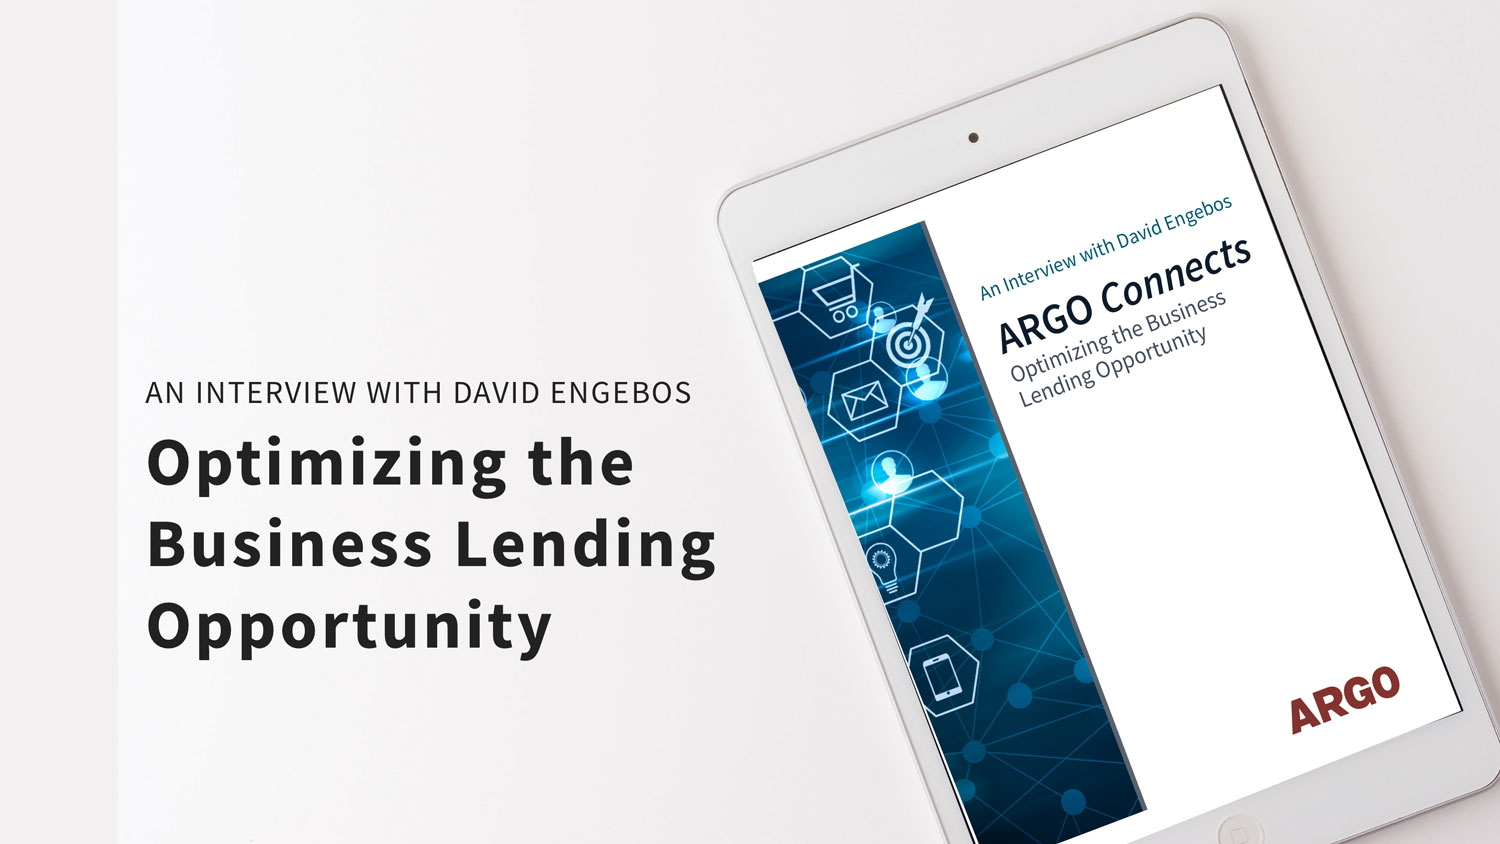 ARGO-connects-2020-optimizing-the-business-lending-opportunity